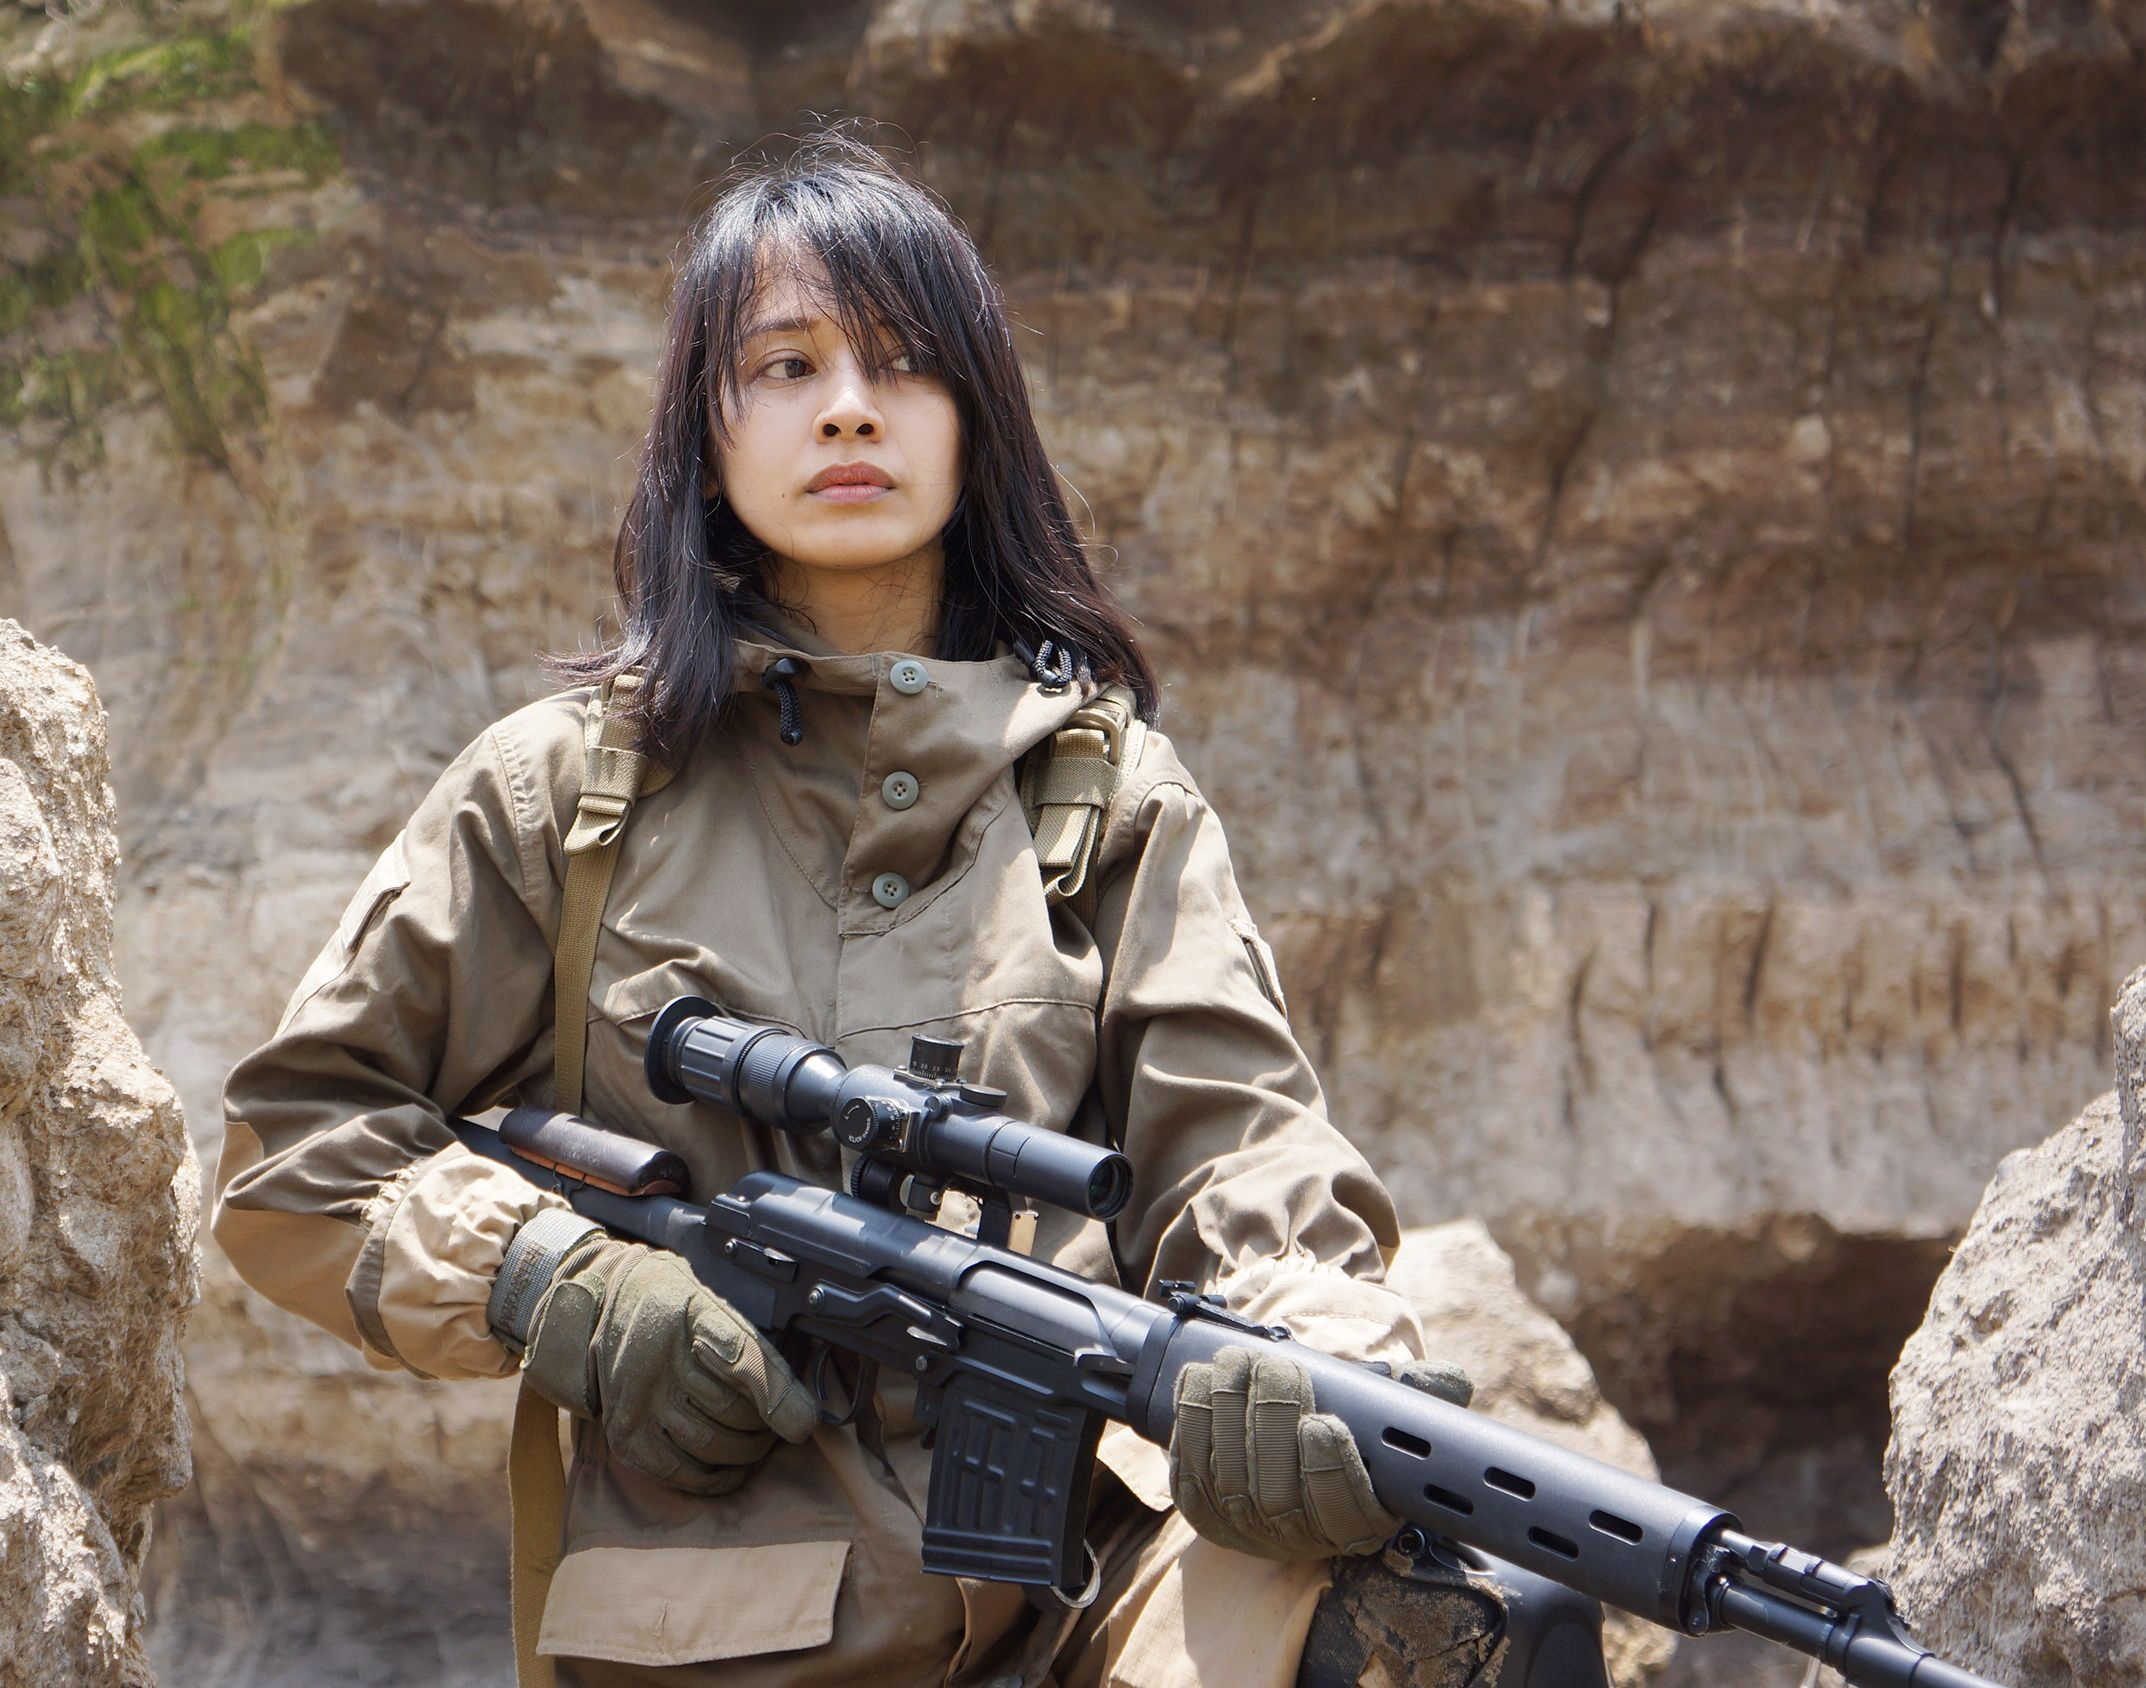 airsoft girl, girls army, sniper woman, milsim operator, gun & girl,